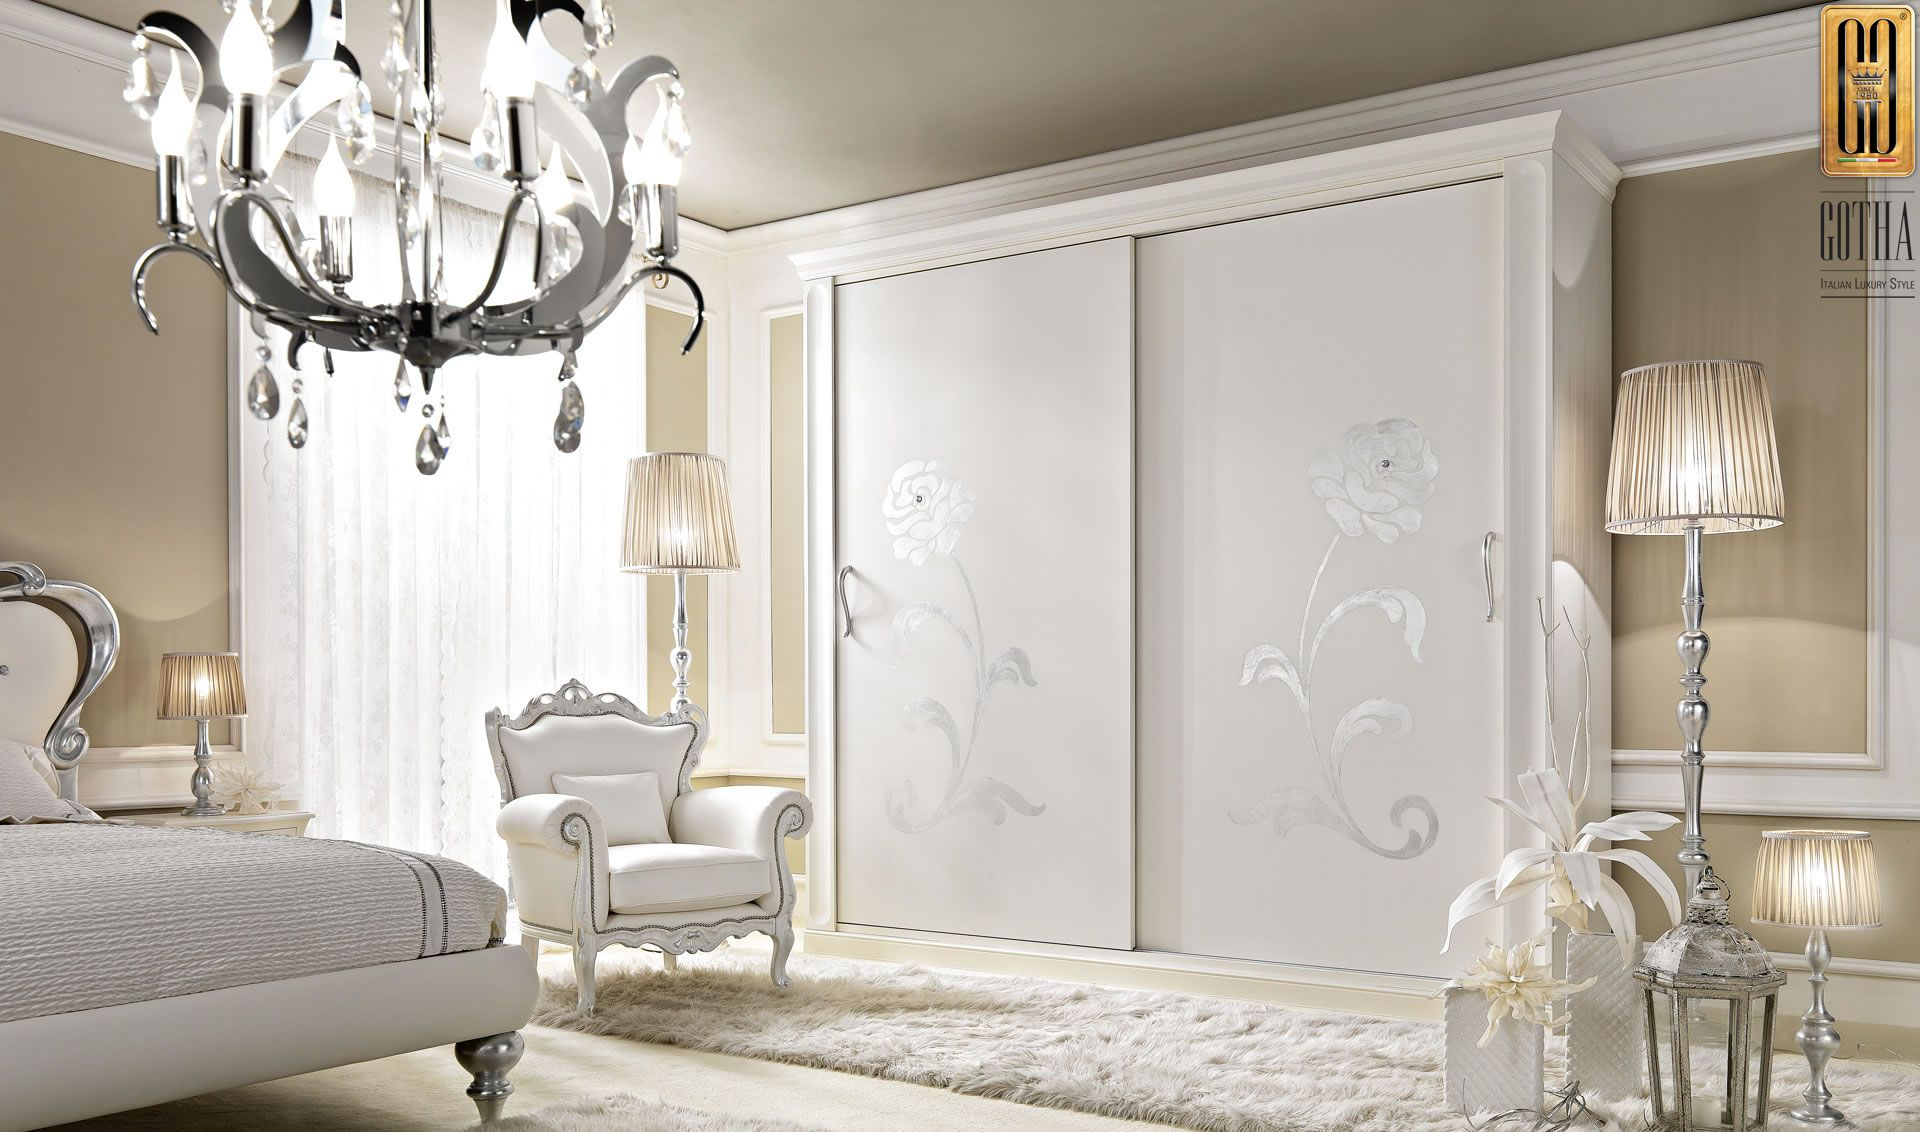 Camere Da Letto Gotha.Armadio Glamour Collection Gotha Luxury Bedroom Forniture